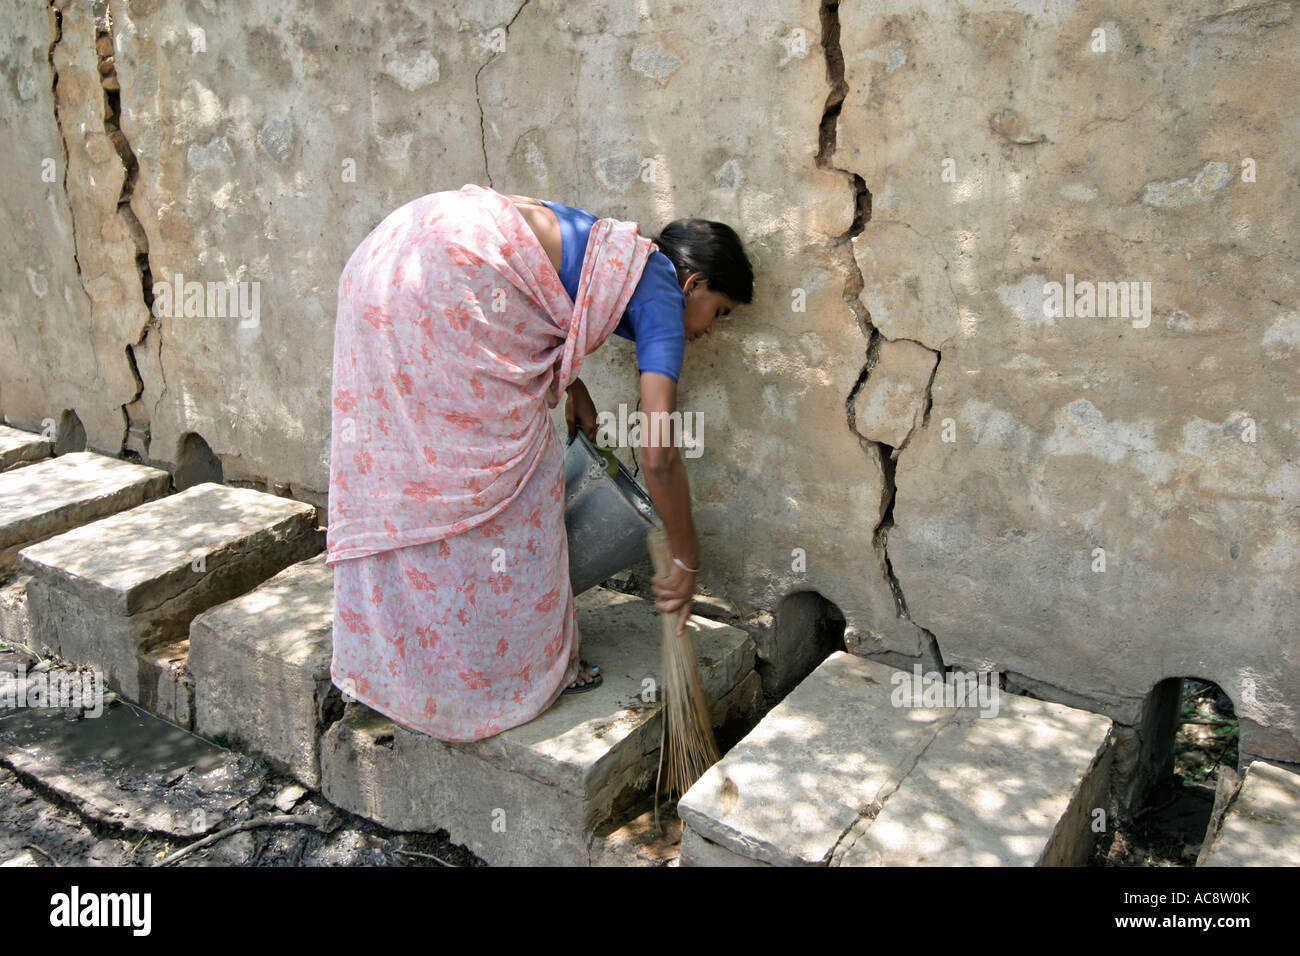 A dalit, or 'untouchable' woman, cleaning public lavatories in her town in Andhra Pradesh, India. - Stock Image